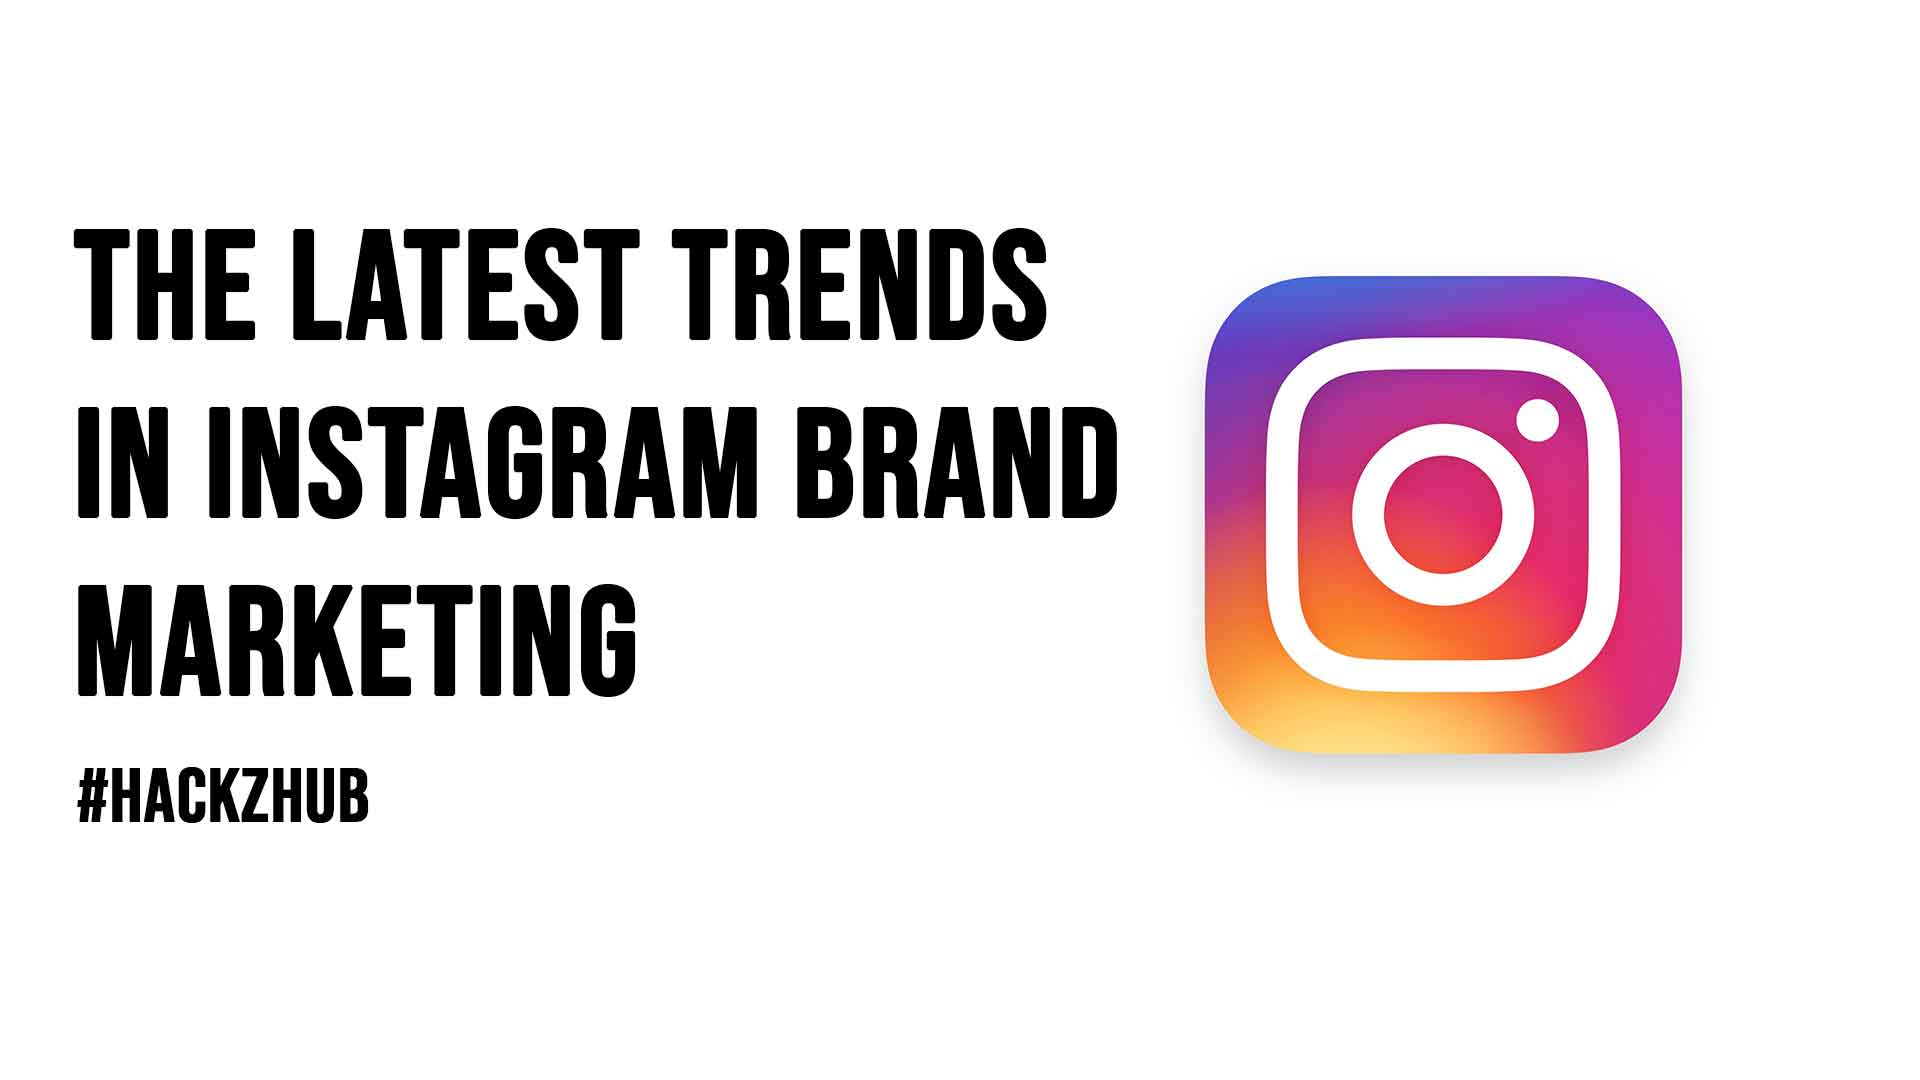 The Latest Trends in Instagram Brand Marketing